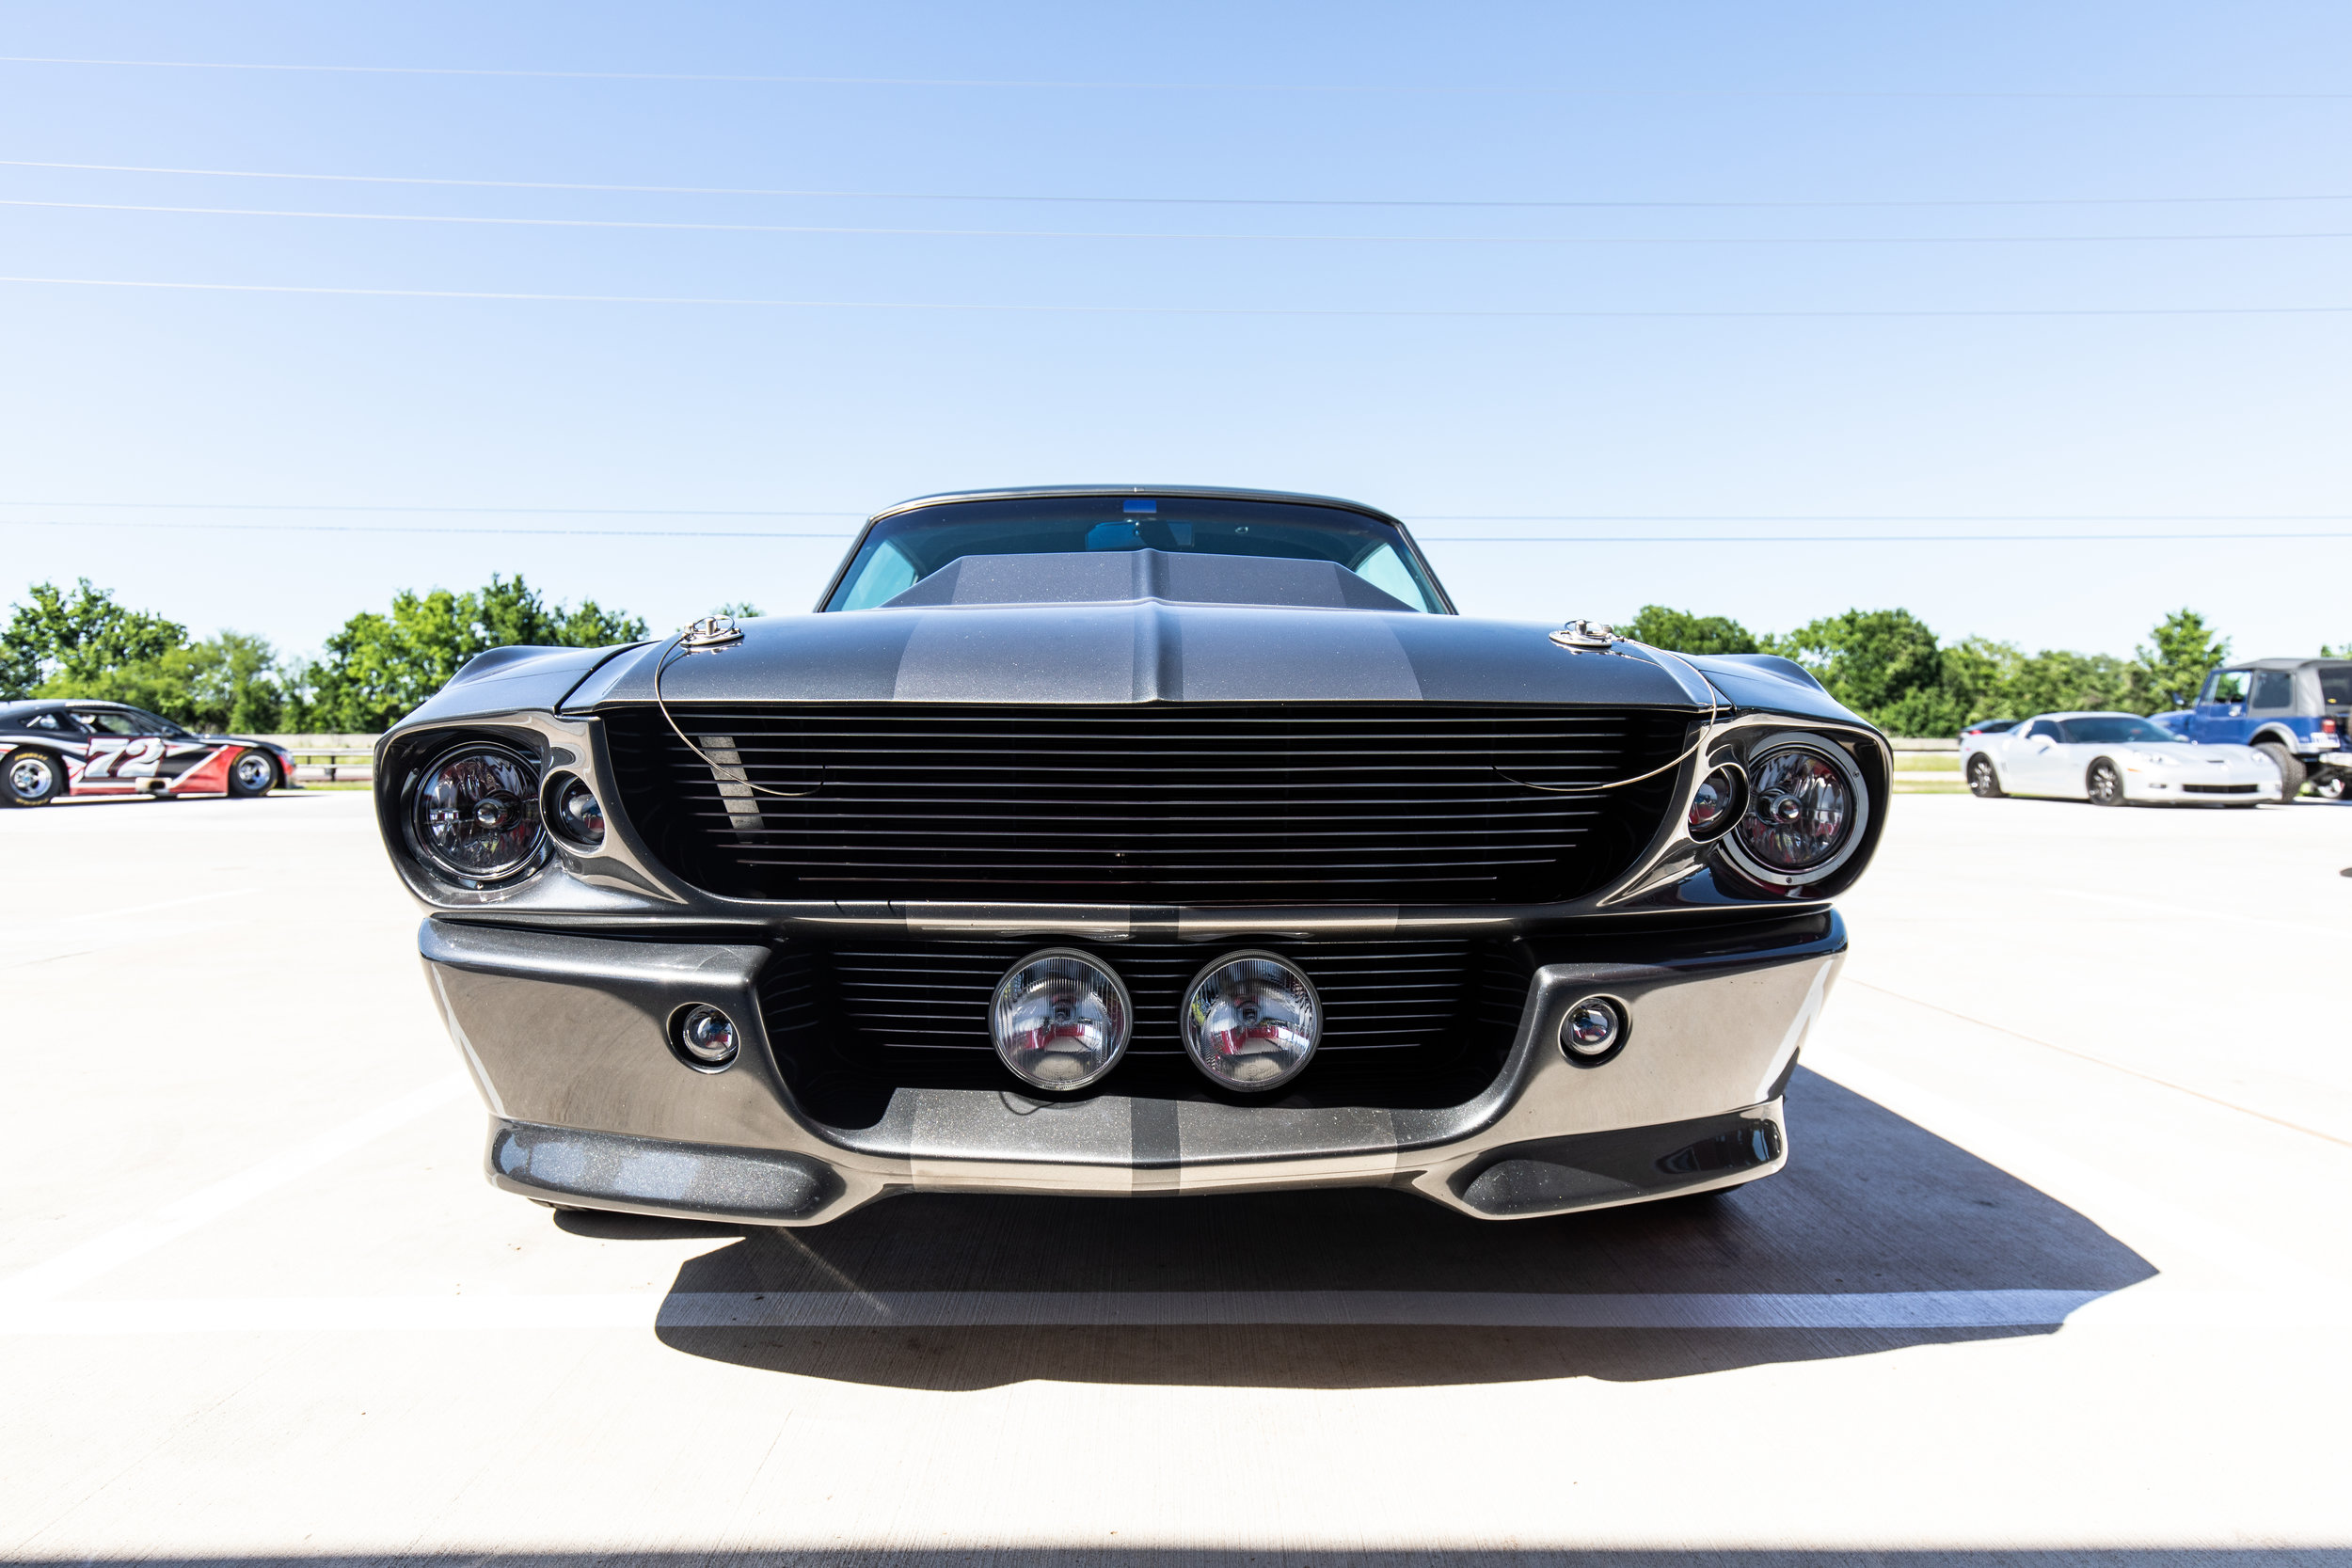 Looking for a hot rod? - Take a look at our inventory and see if you can't find something to get your engine running!